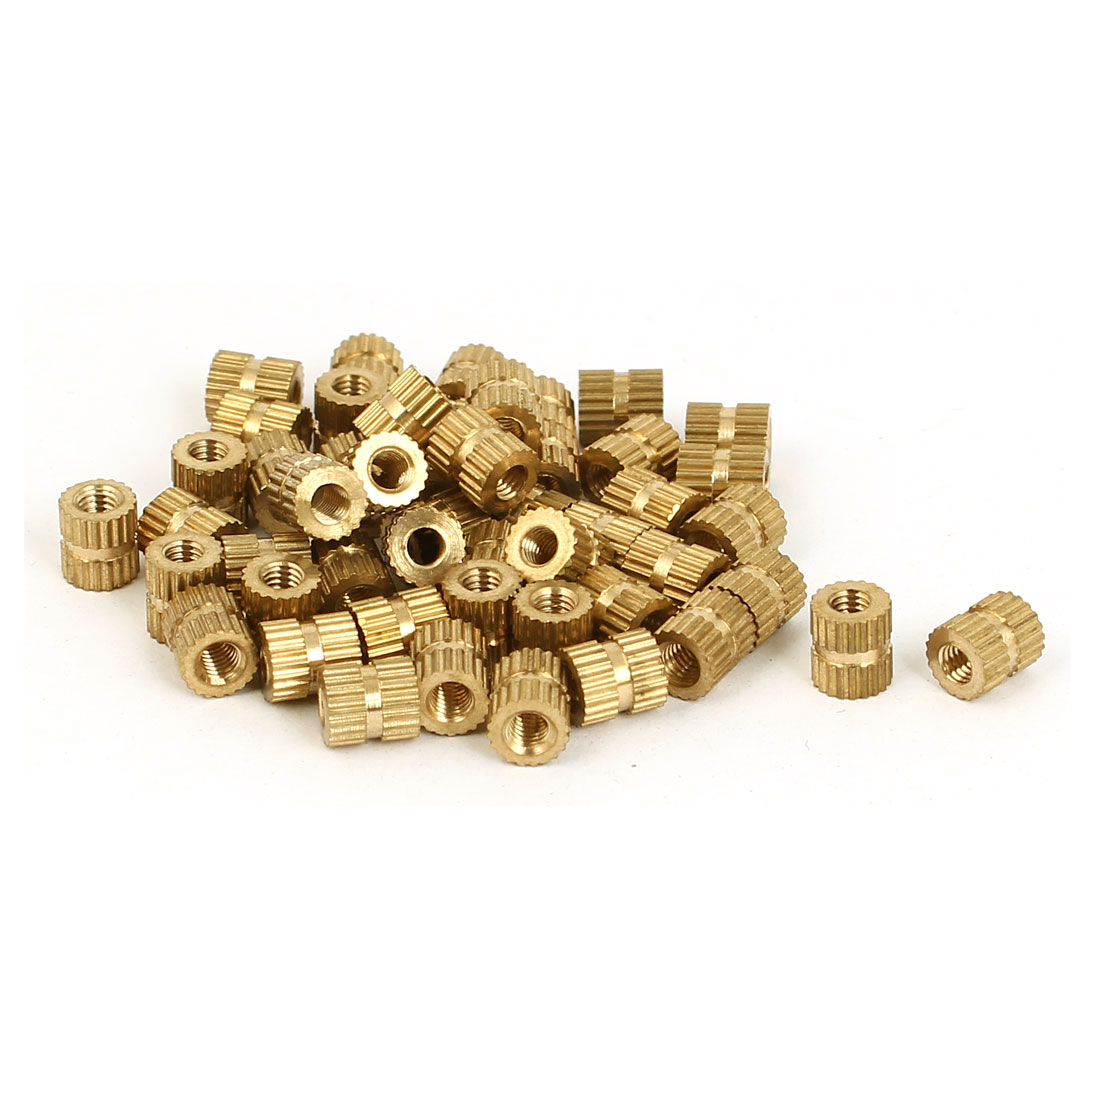 M3 Female Threaded Insert Embedded Brass Knurled Thumb Nuts Gold Tone 50 Pcs